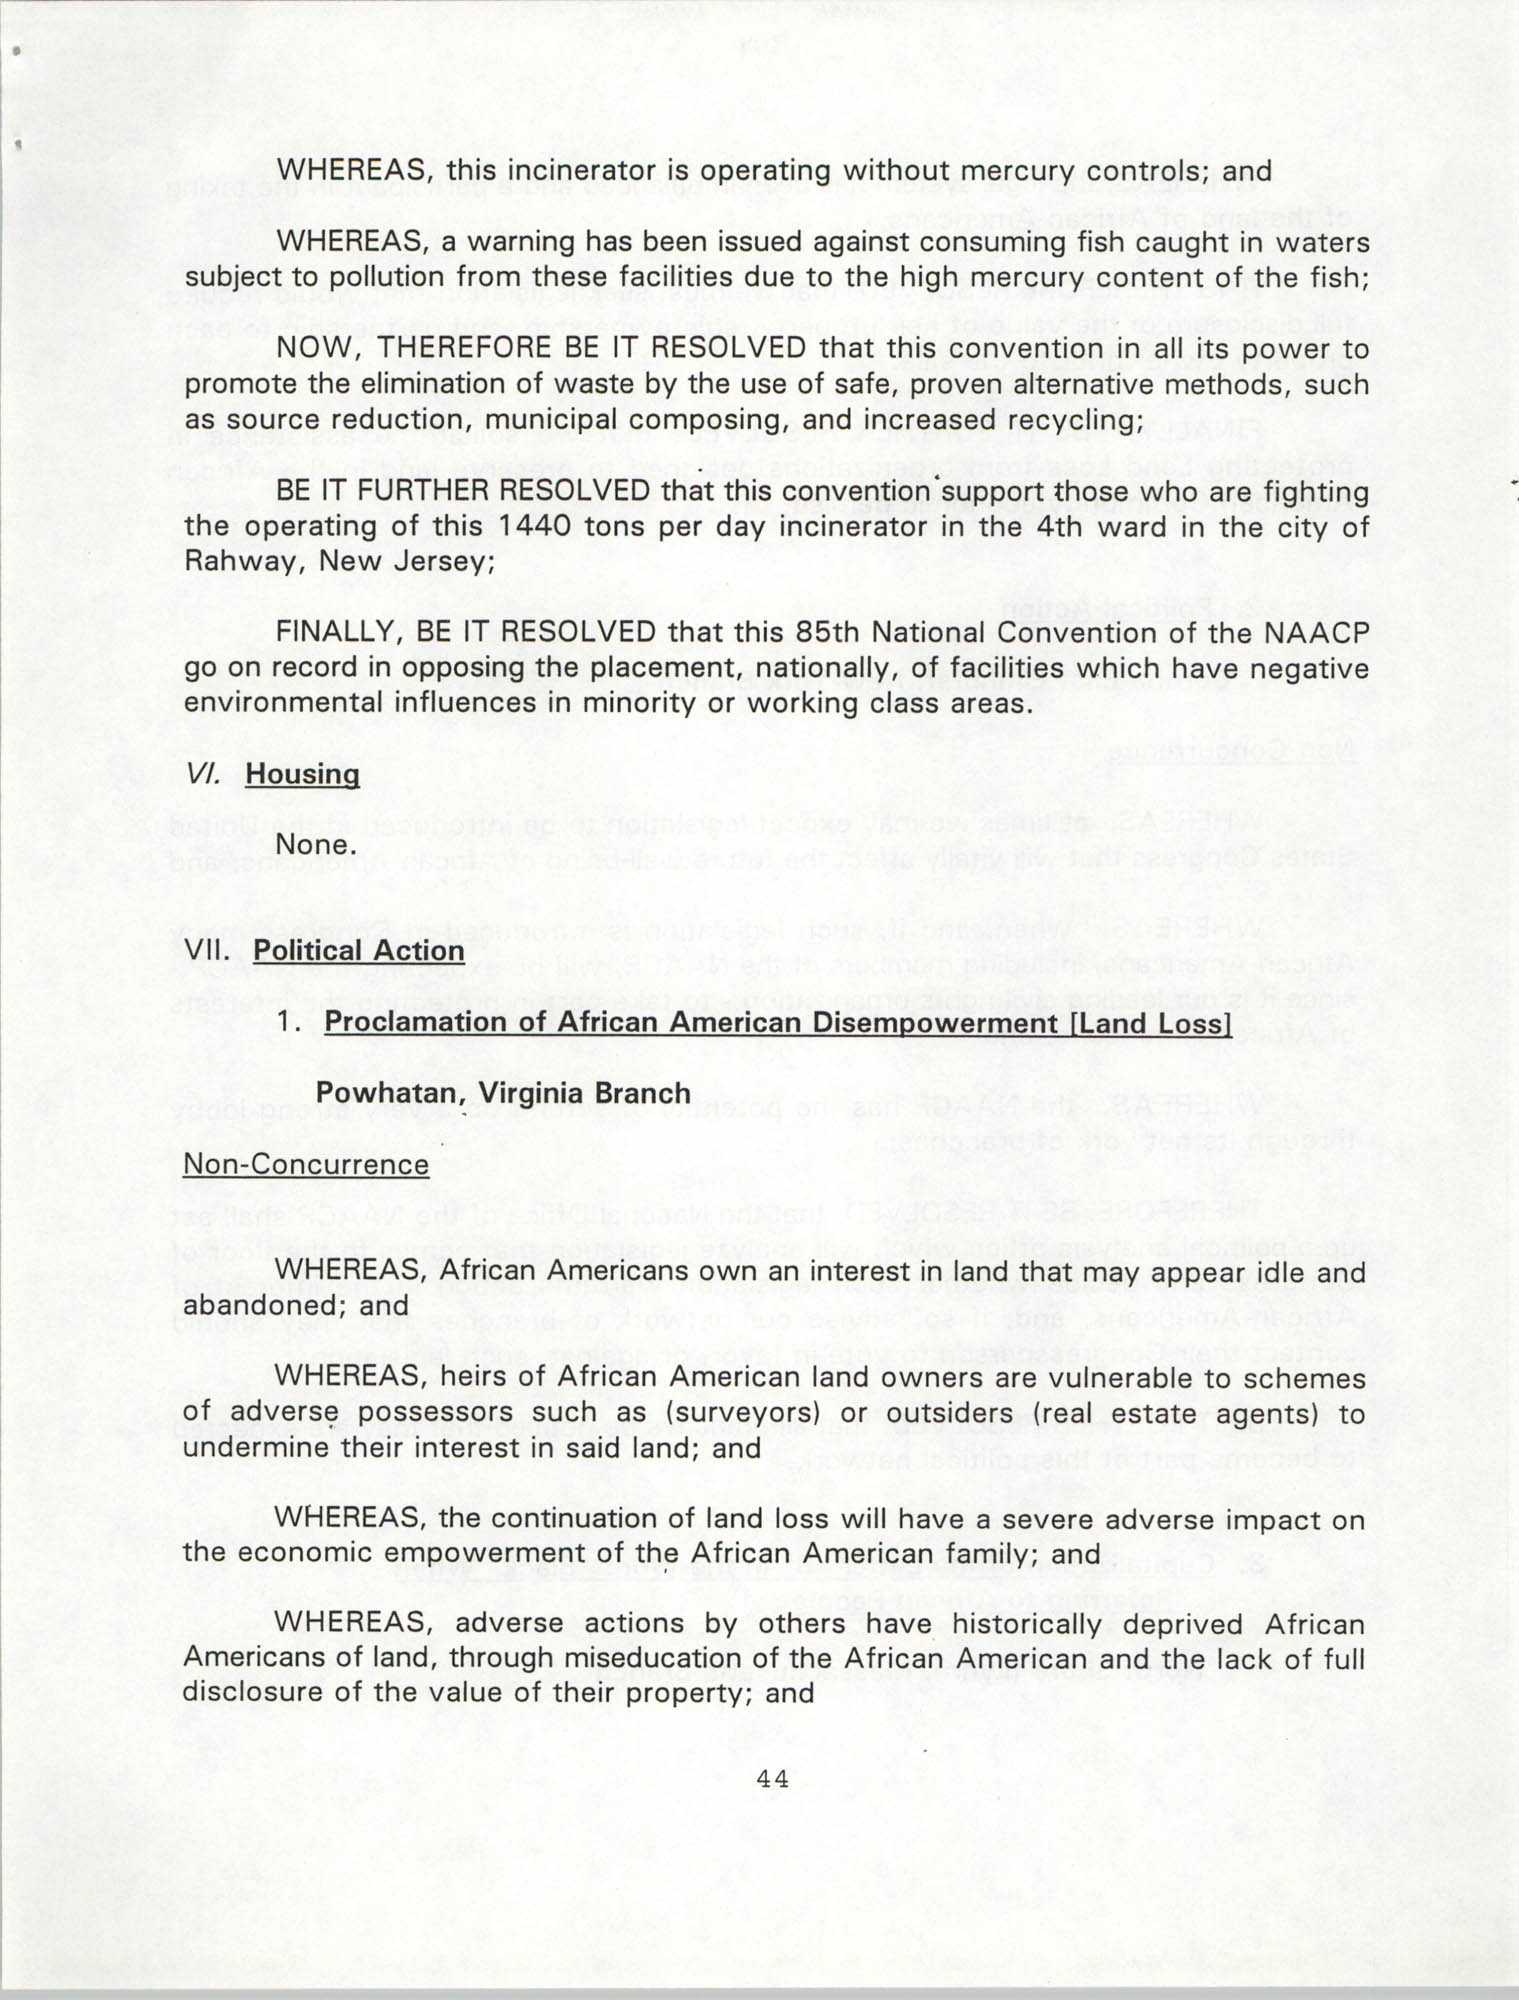 Resolutions Submitted Under Article X, Section 2 of the Constitution of the NAACP, 1994, Page 44